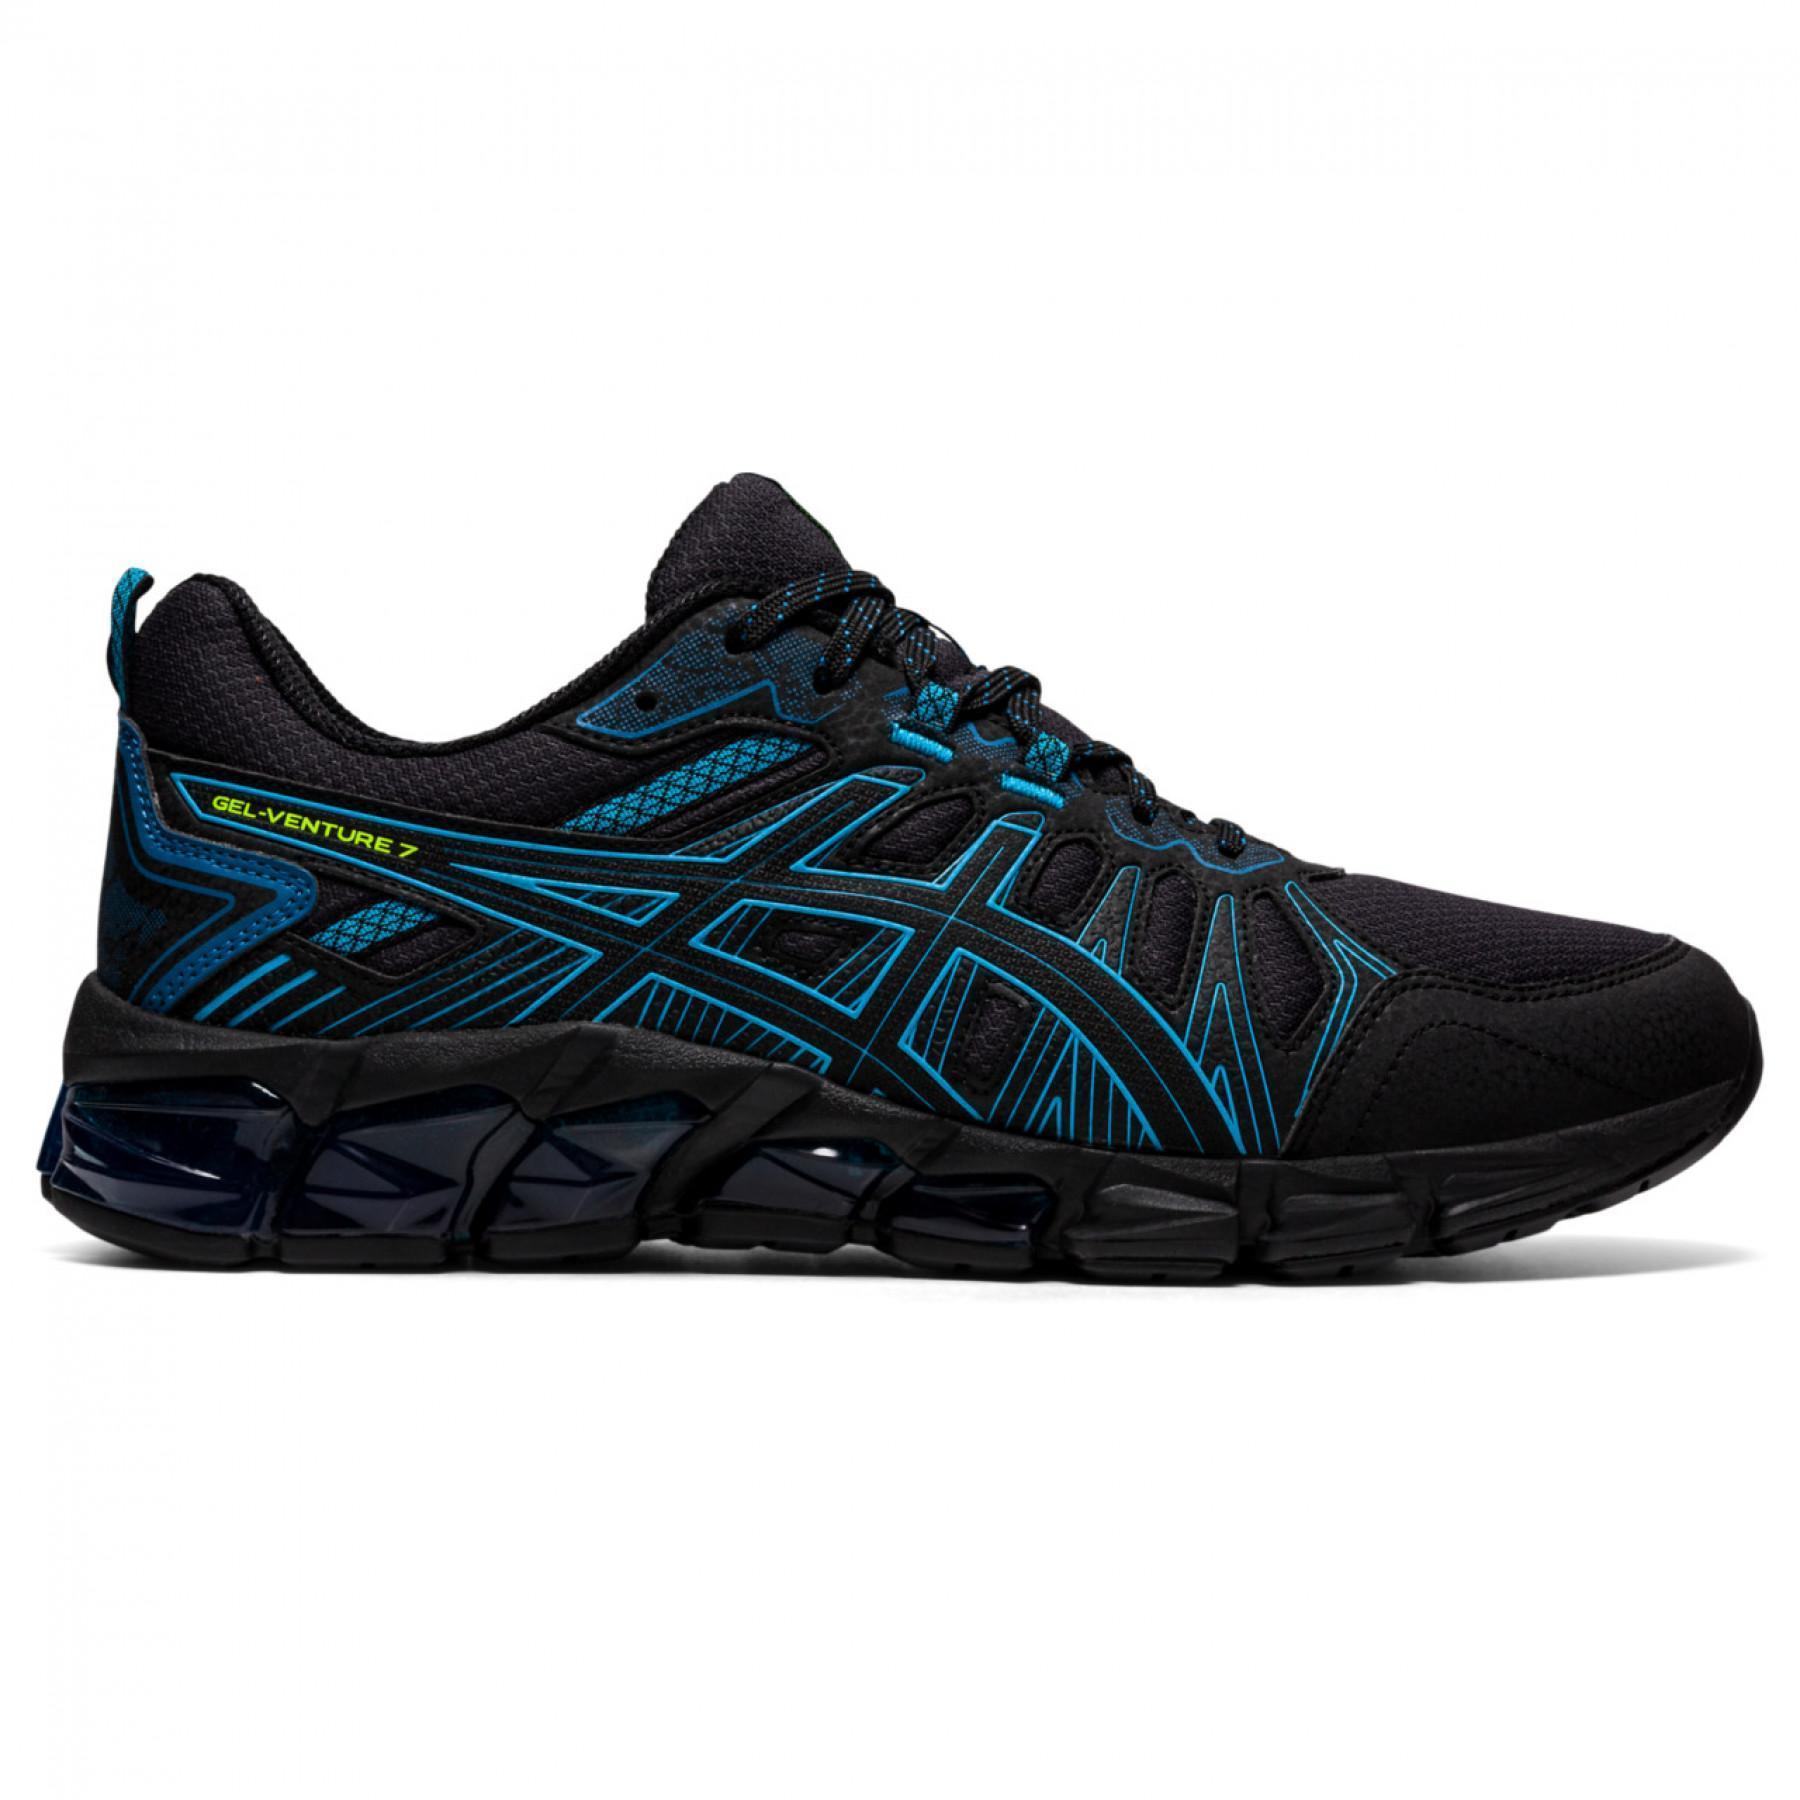 Asics Gel-Venture 180 Shoes